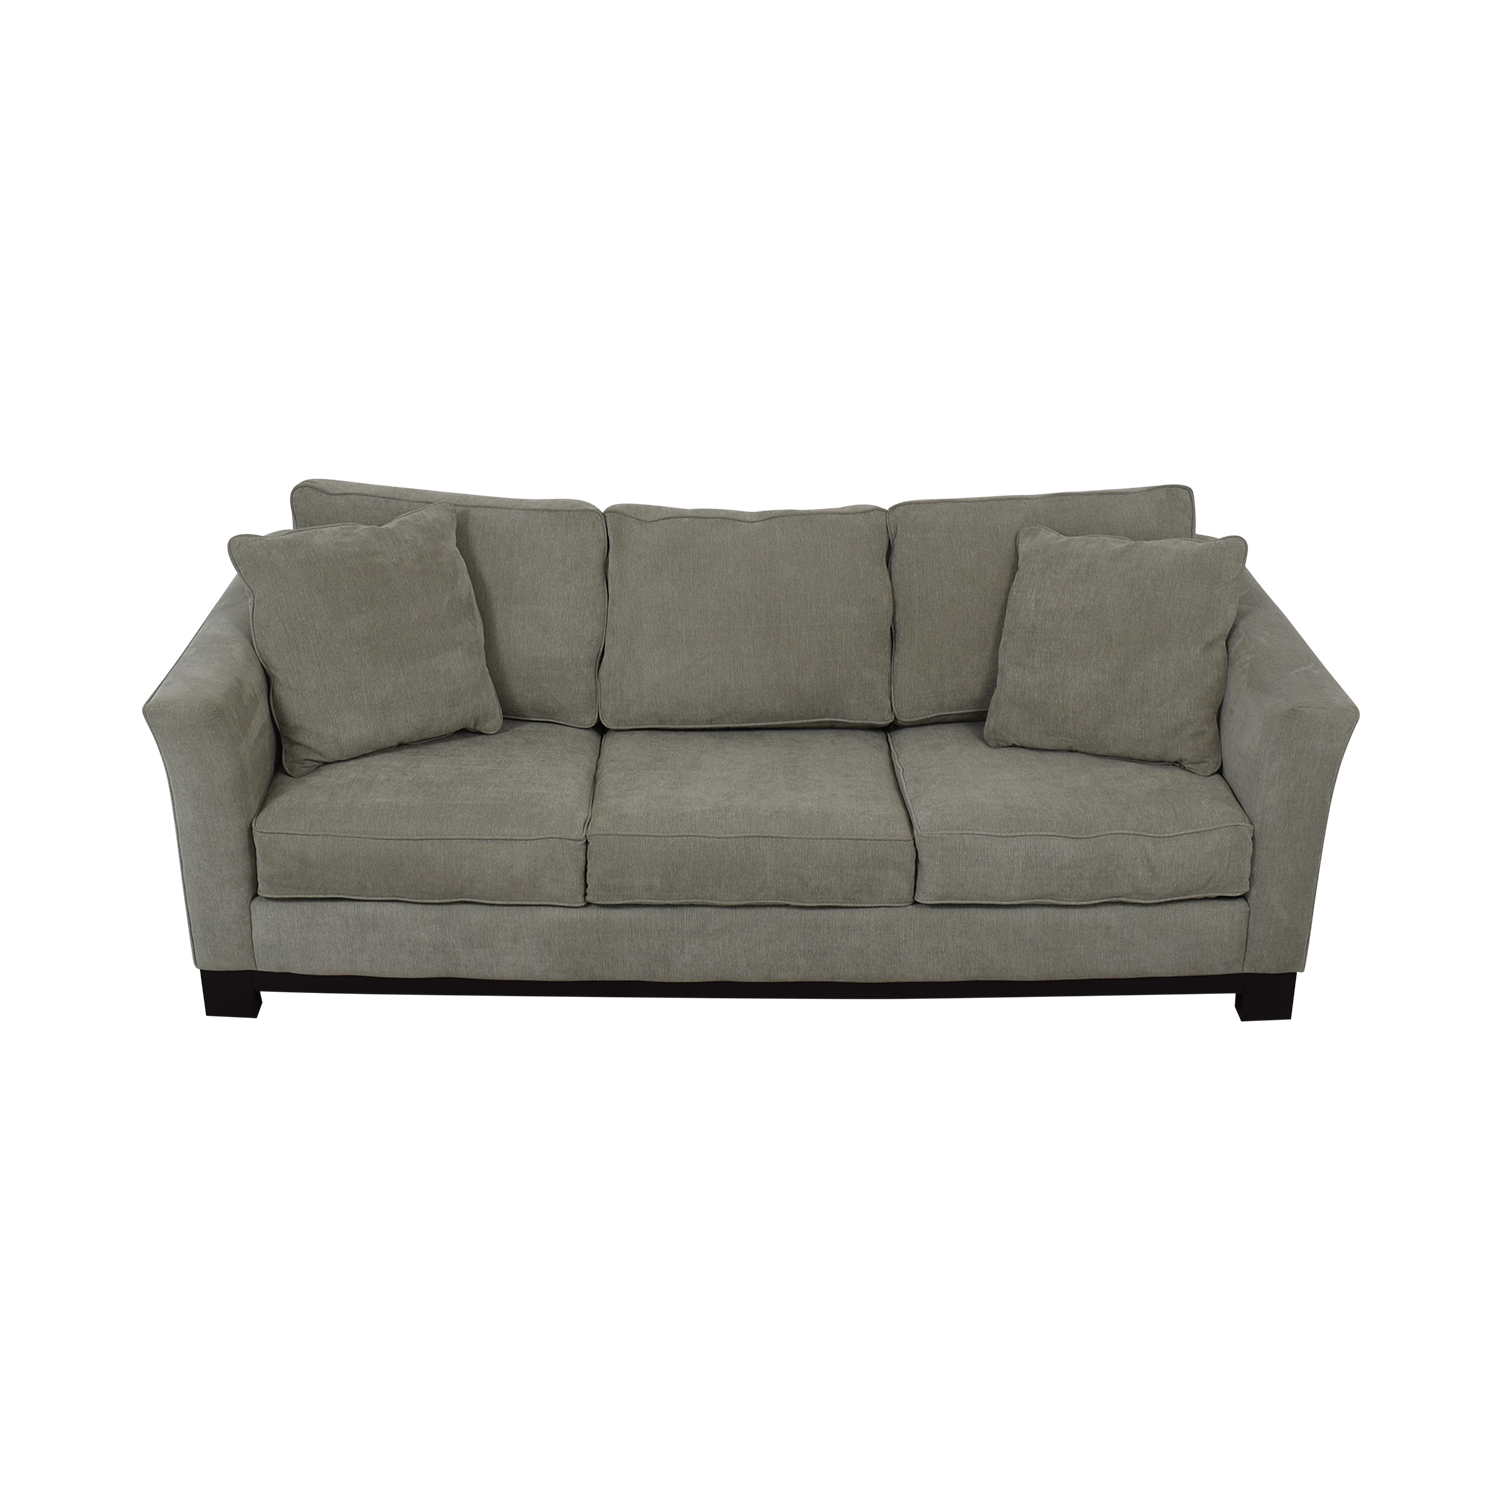 buy Macy's Macy's Queen Sleeper Sofa online